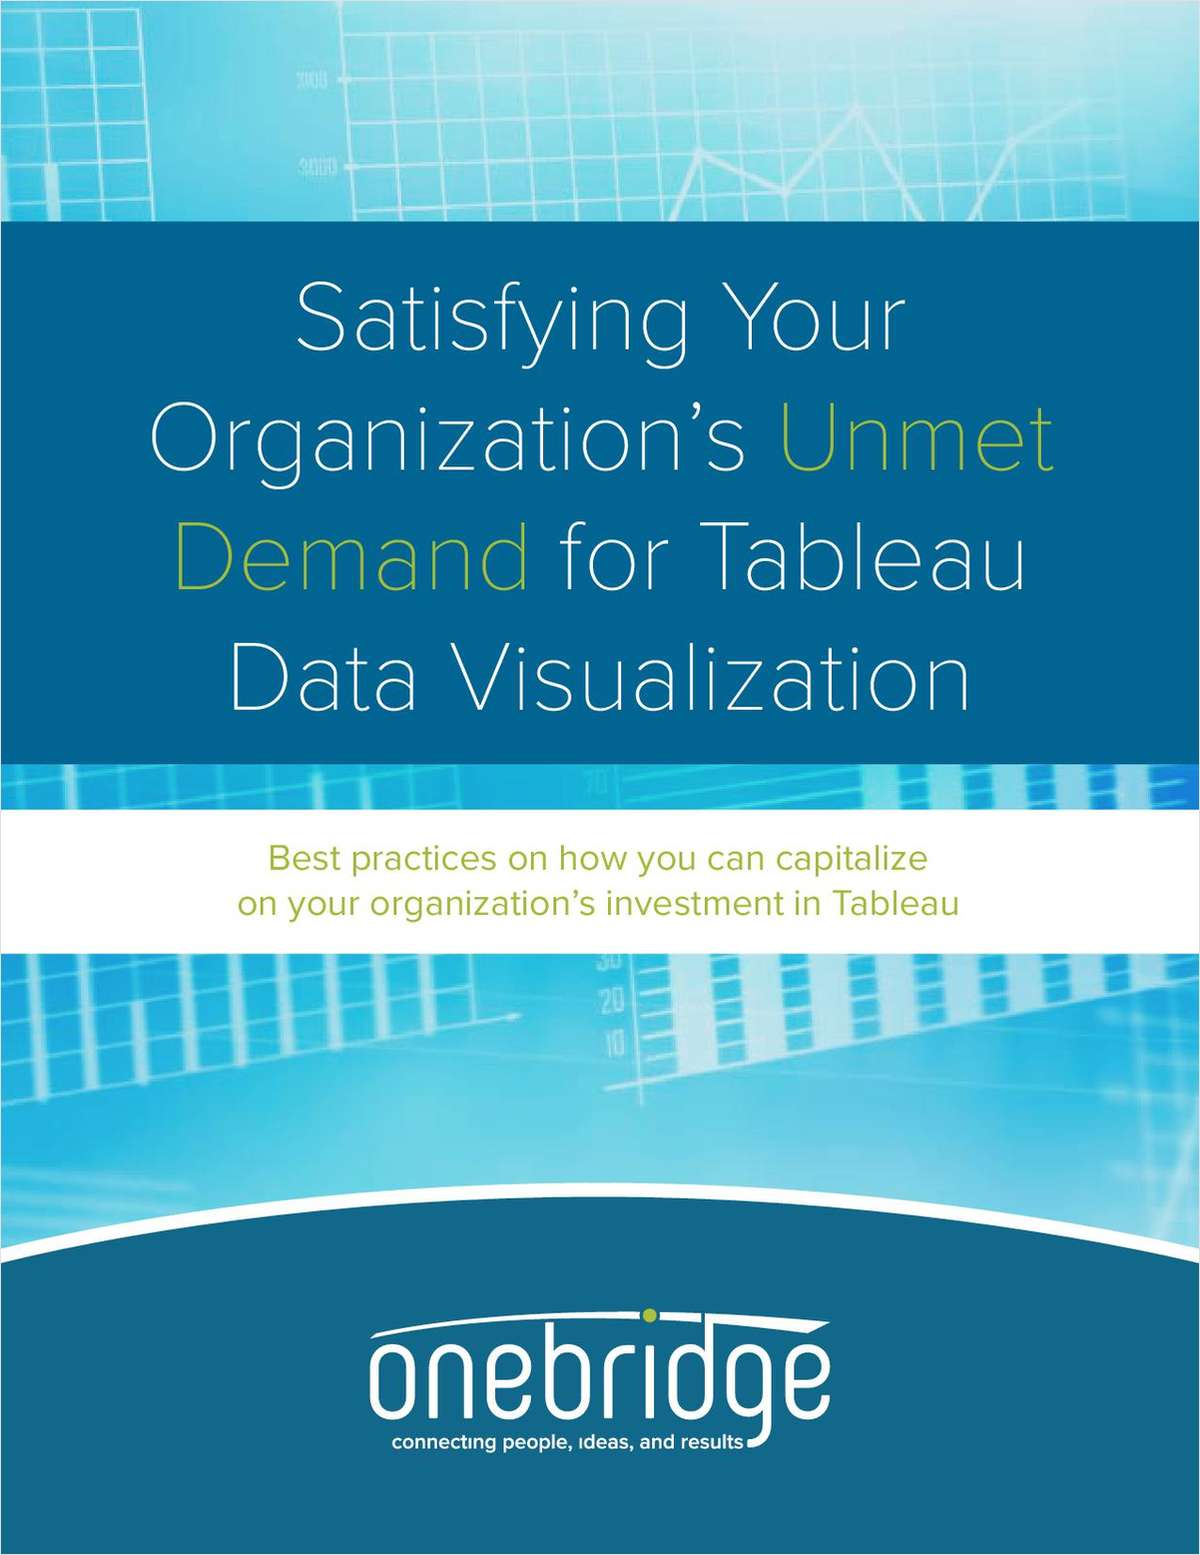 Satisfying Your Organization's Unmet Demand for Tableau Data Visualization